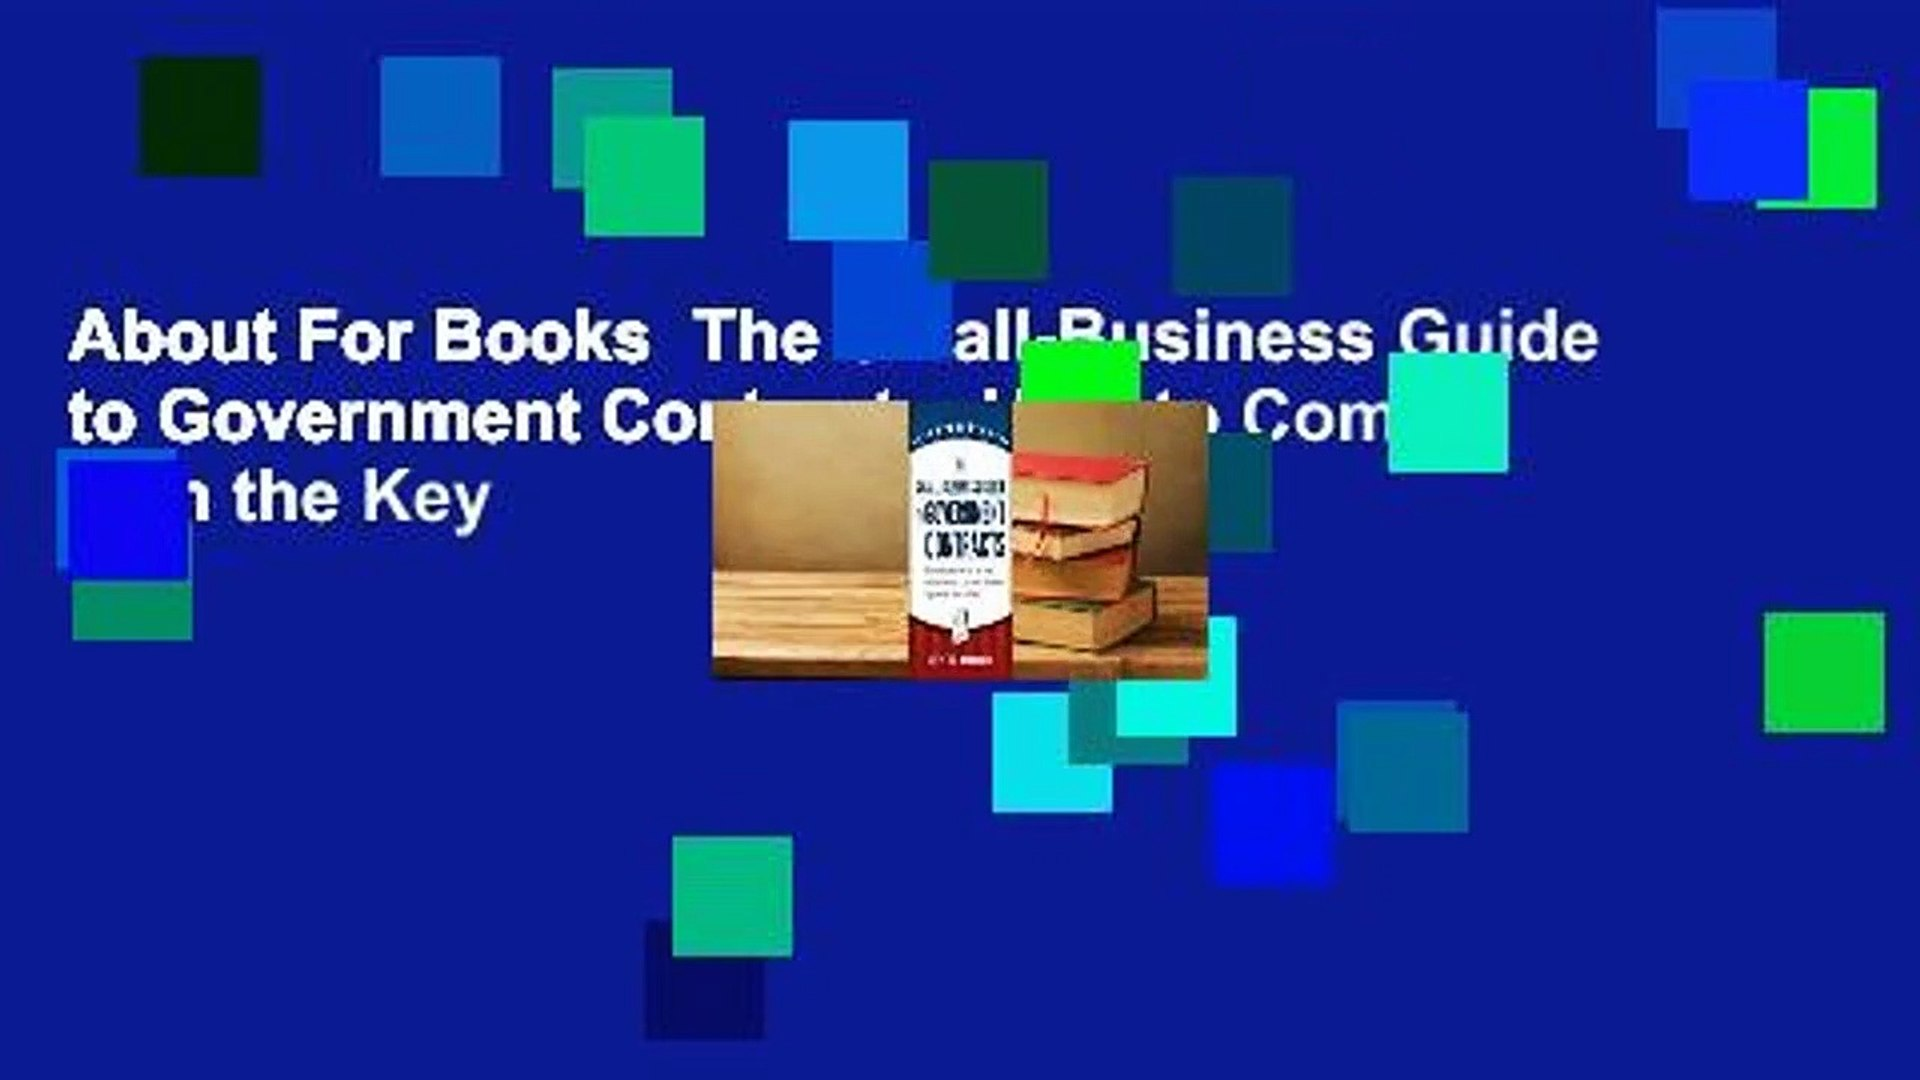 About For Books  The Small-Business Guide to Government Contracts: How to Comply with the Key